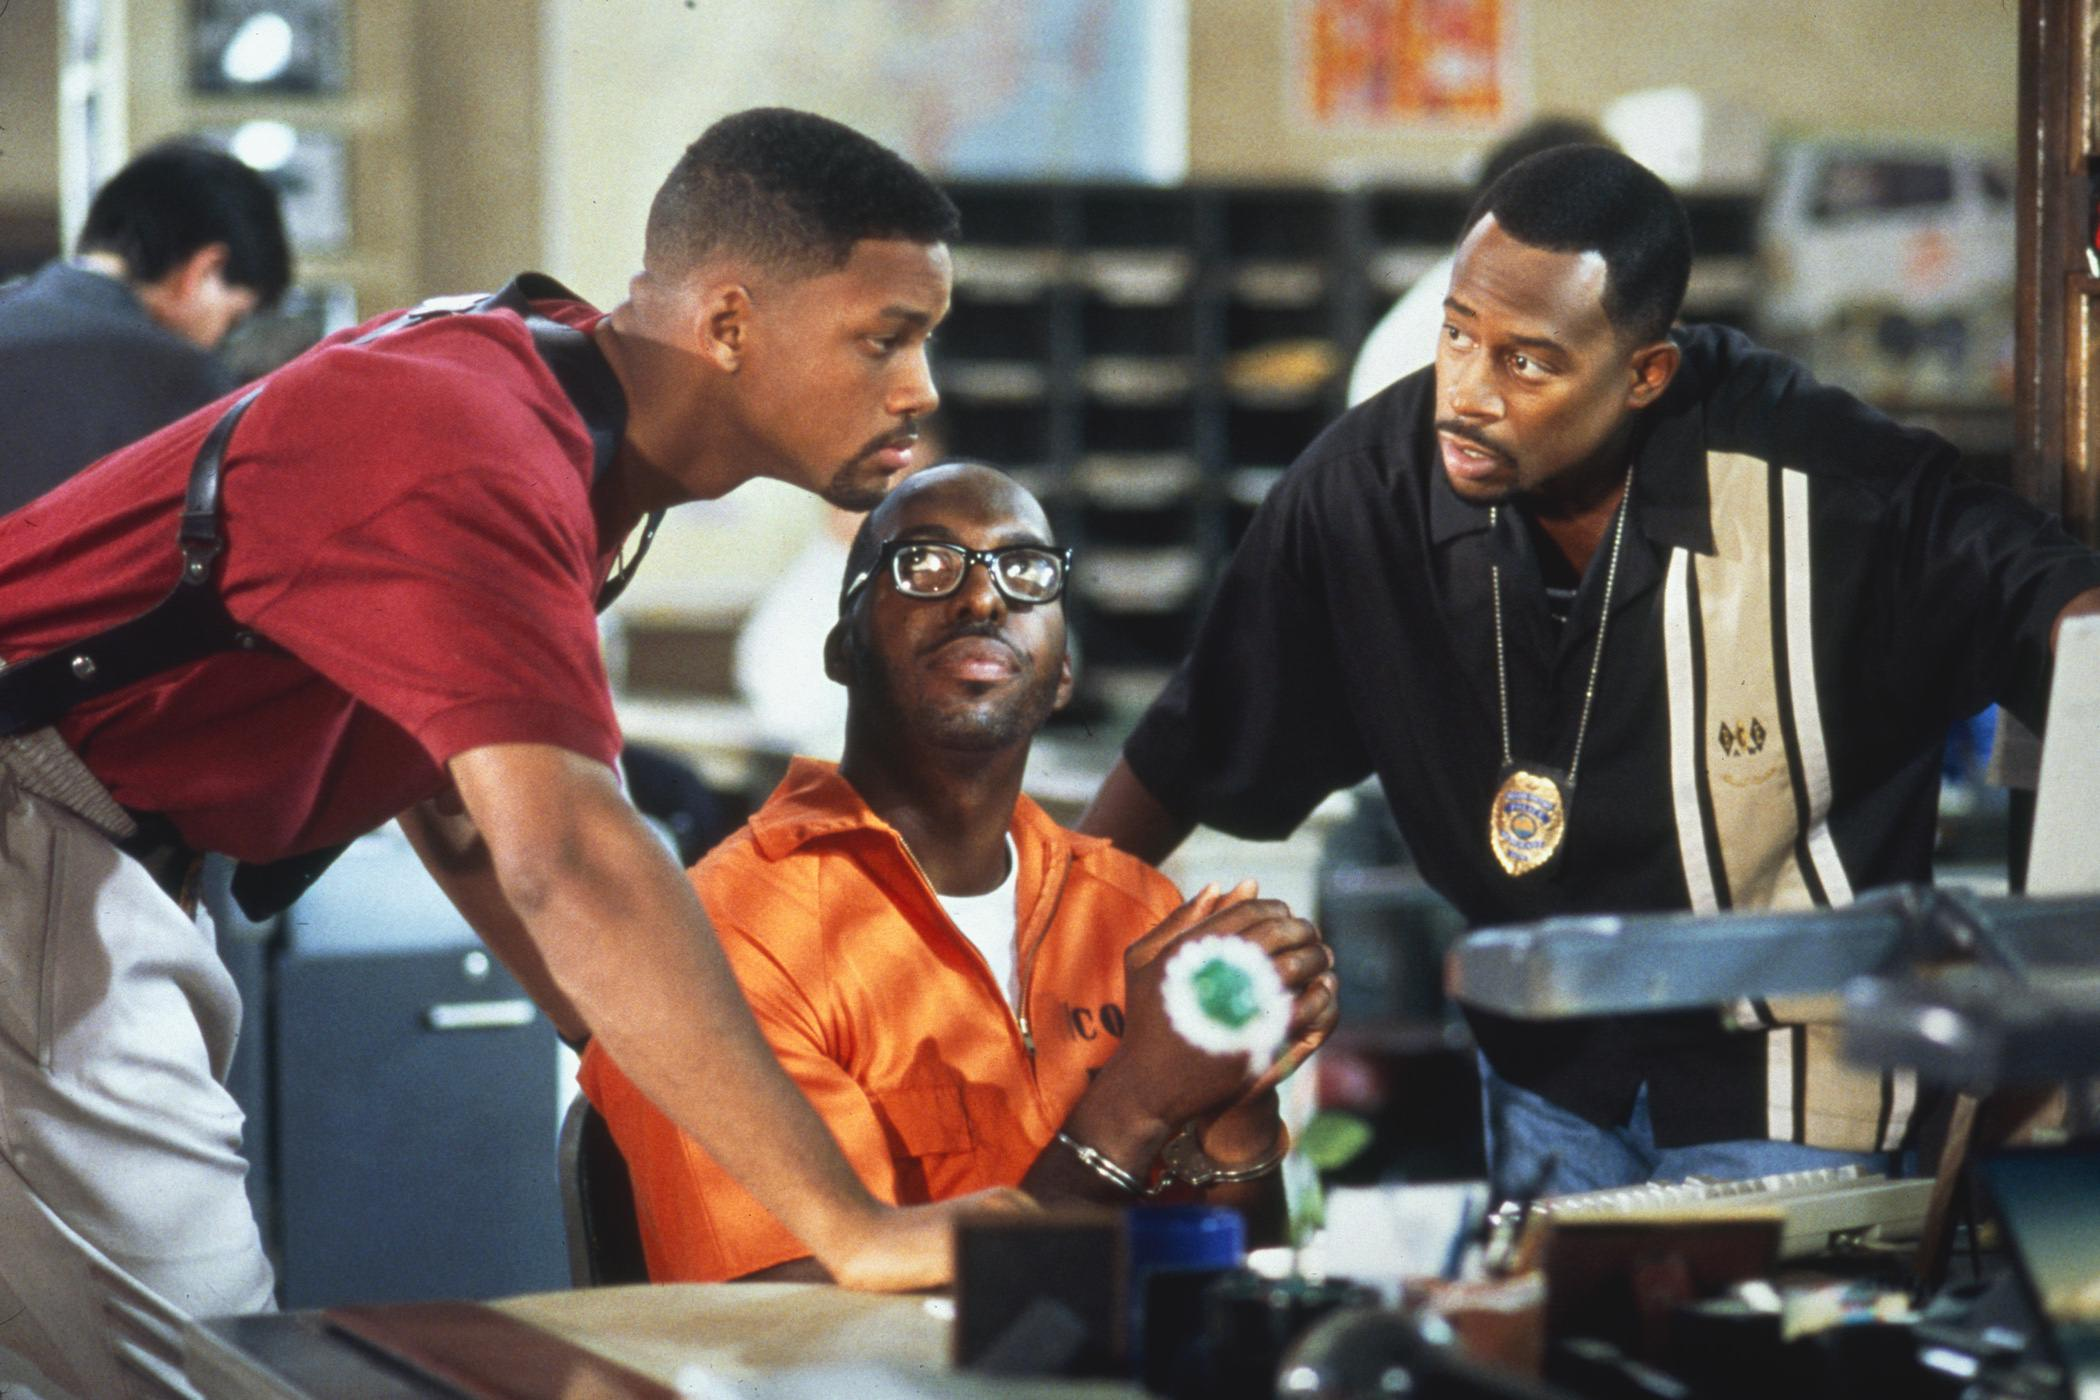 bad-boys-will-smith-martin-lawrence